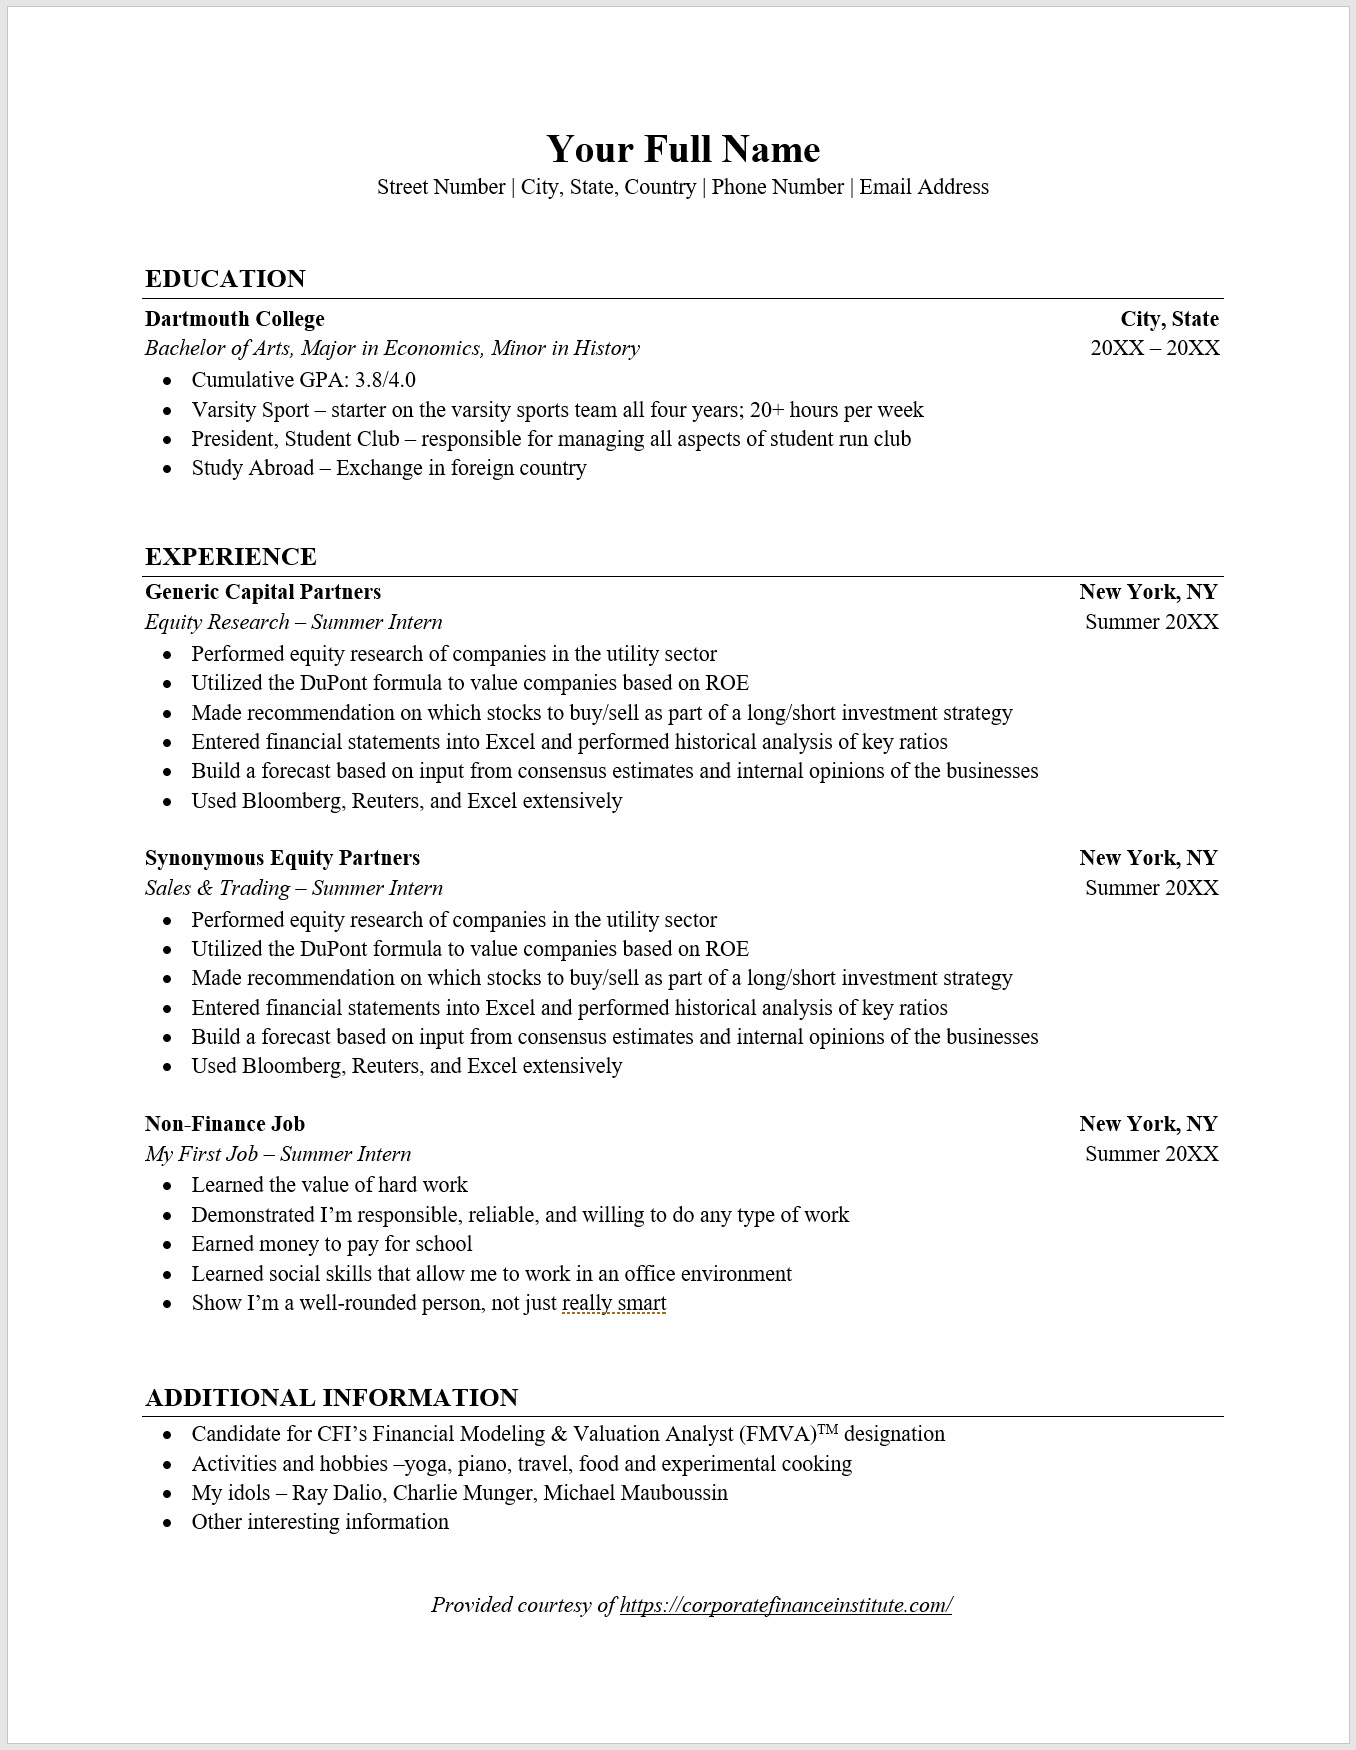 How to List Degree on Resume - Example